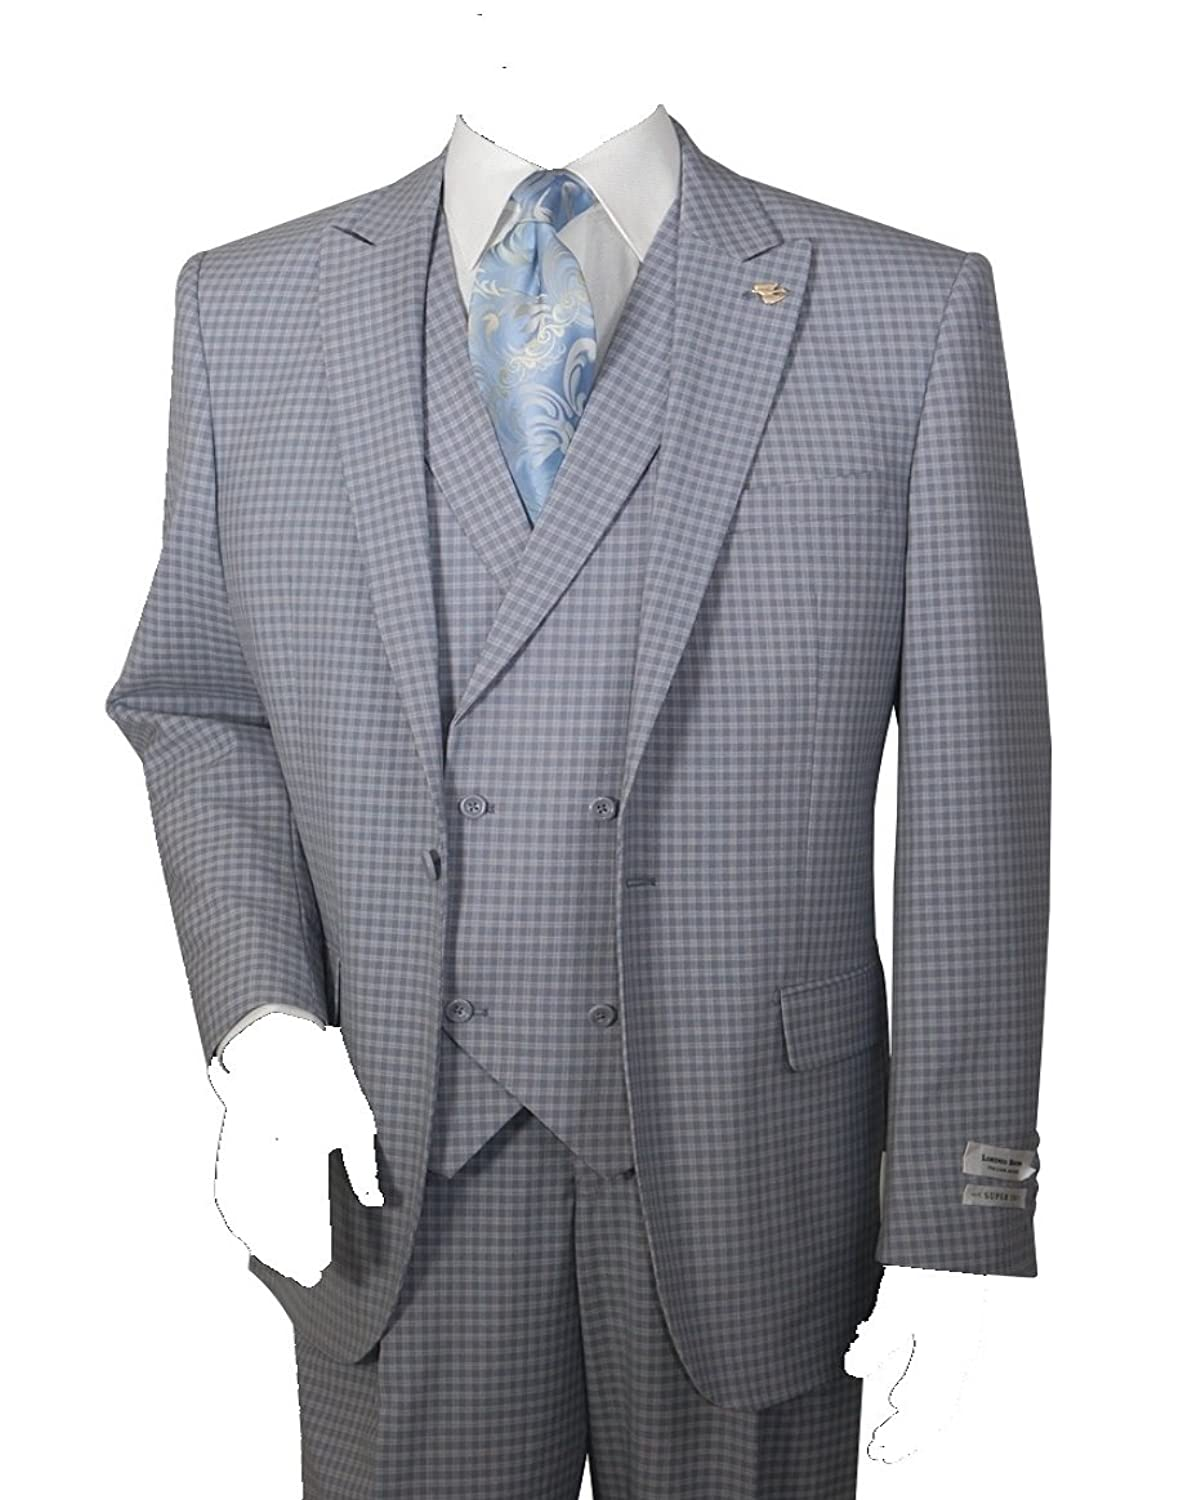 1920s Men's Suits History Mens 3 Piece Single Button Mini-Plaid Pattern Suit (Gray) $149.99 AT vintagedancer.com